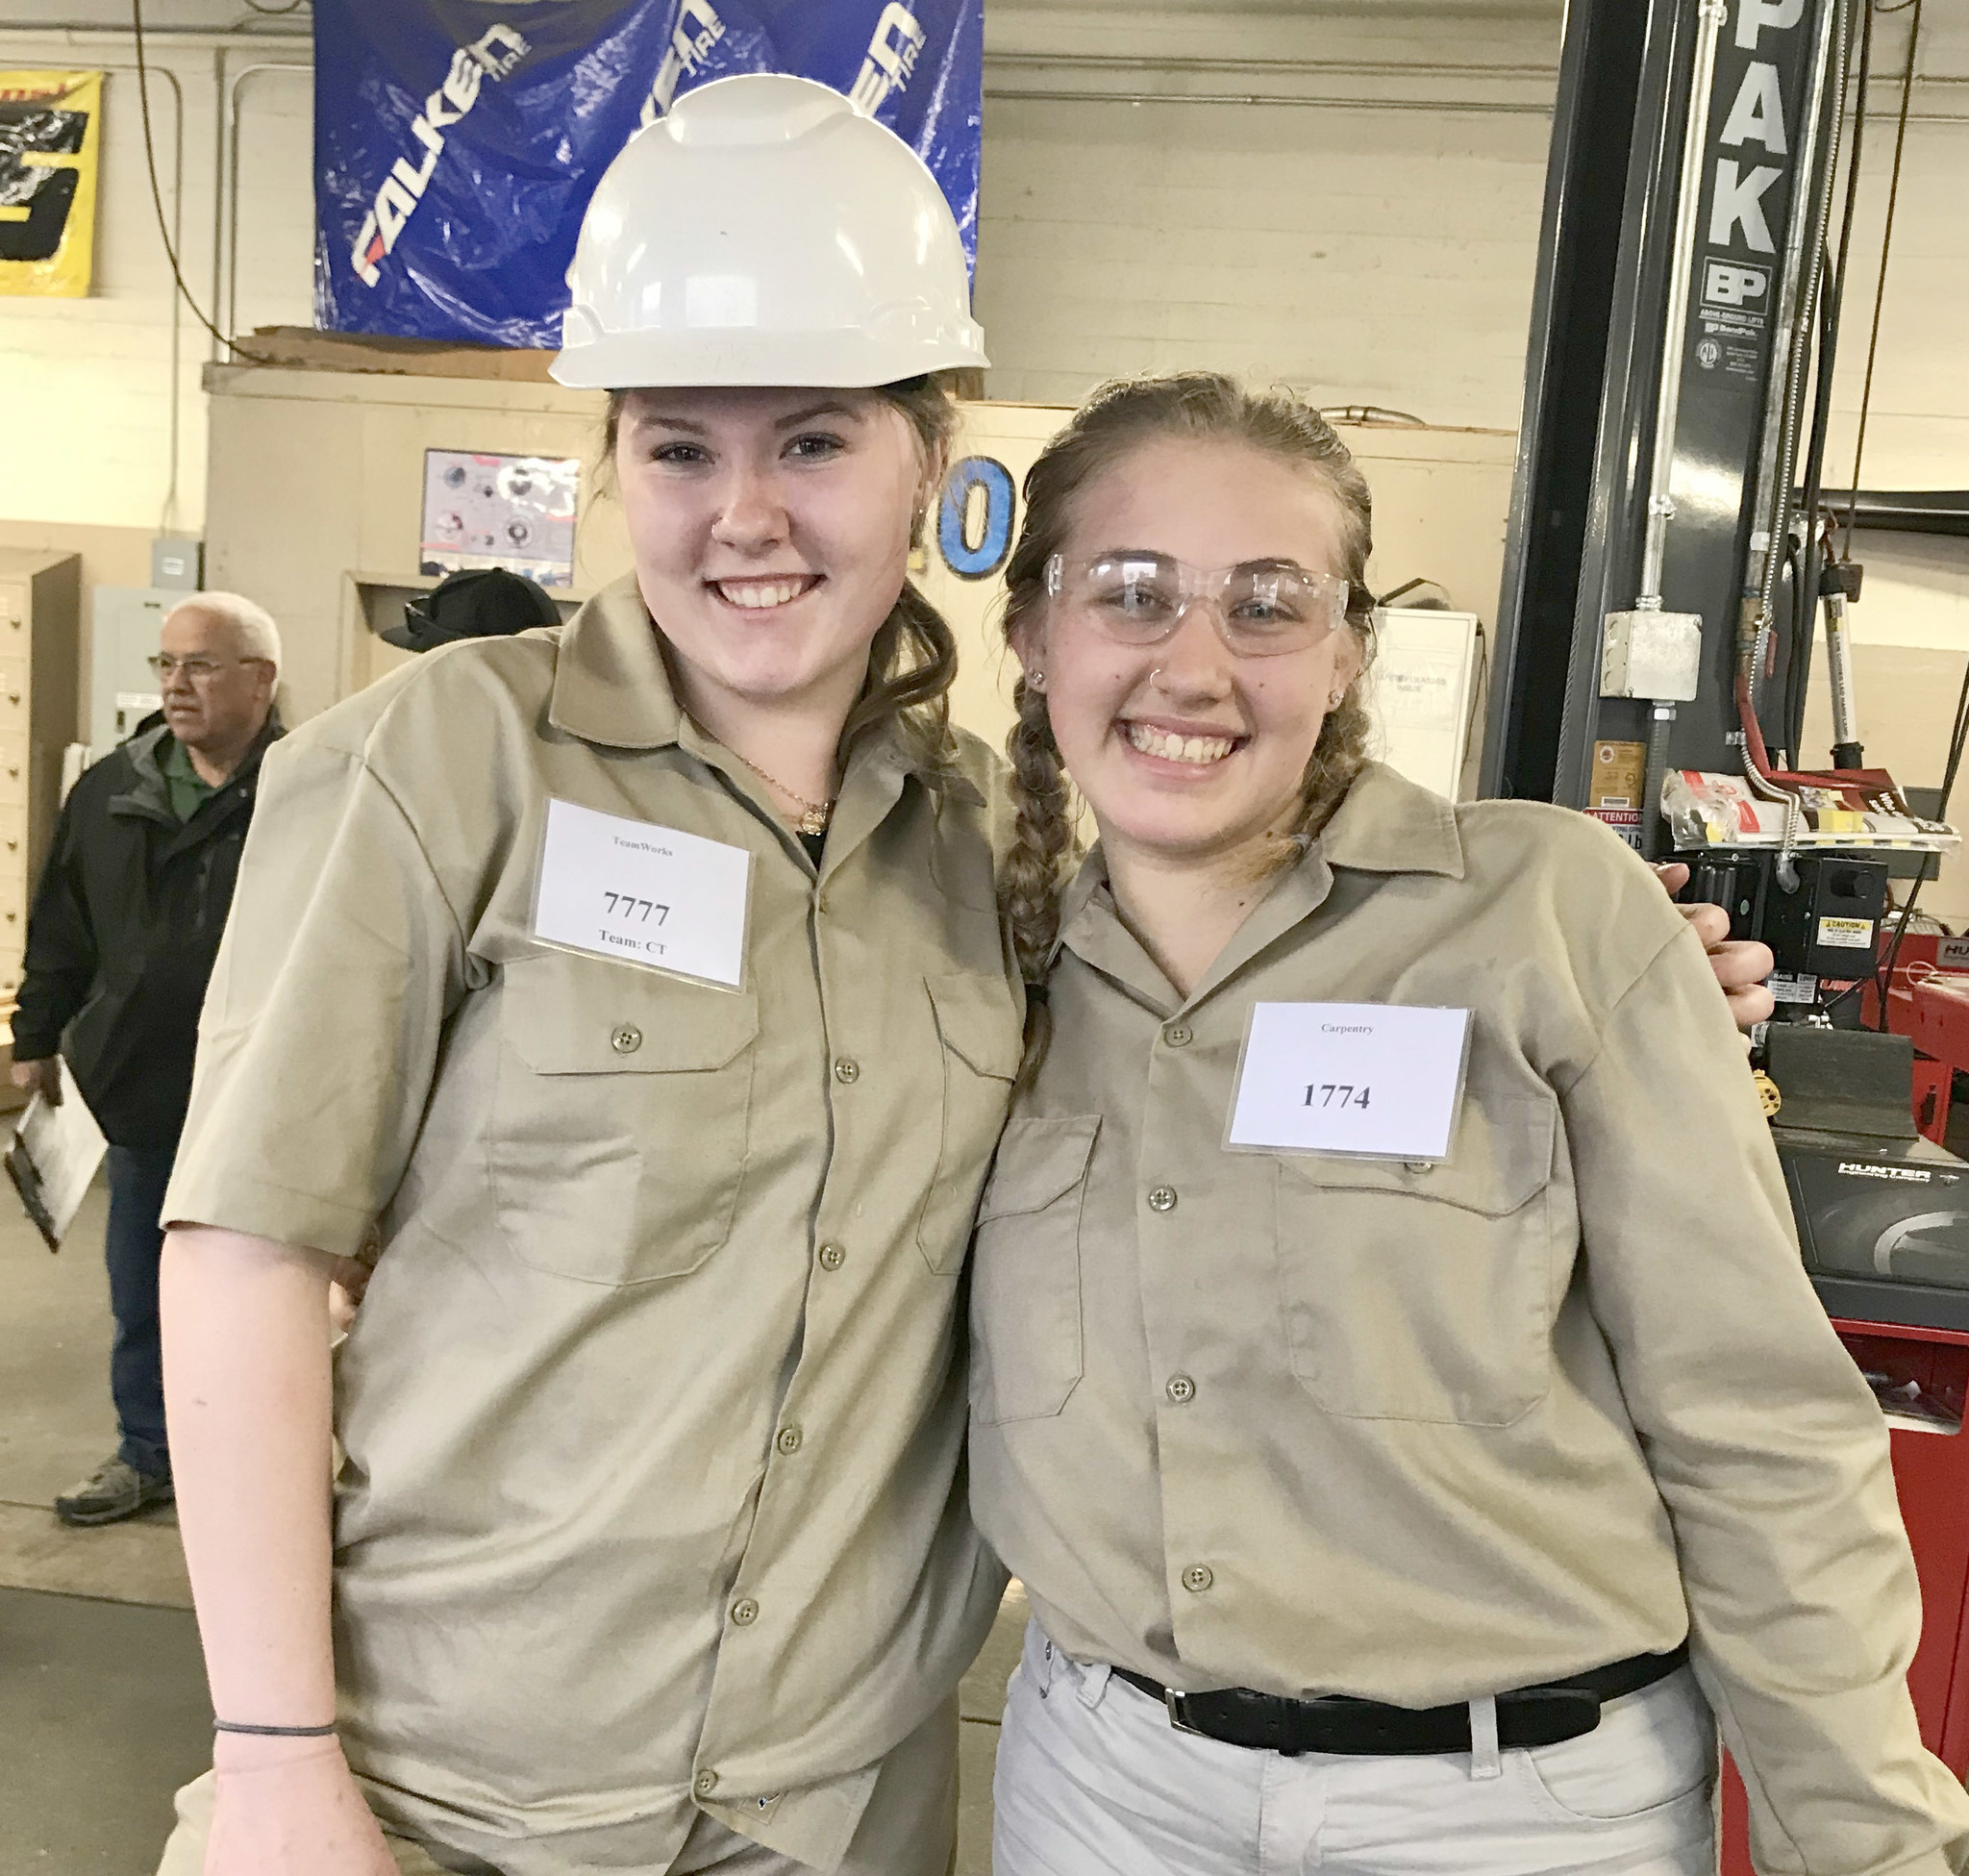 Elora Hitt, left, and Zoey Falls are among Montecito High School construction students who are competing in SkillsUSA trades competitions.